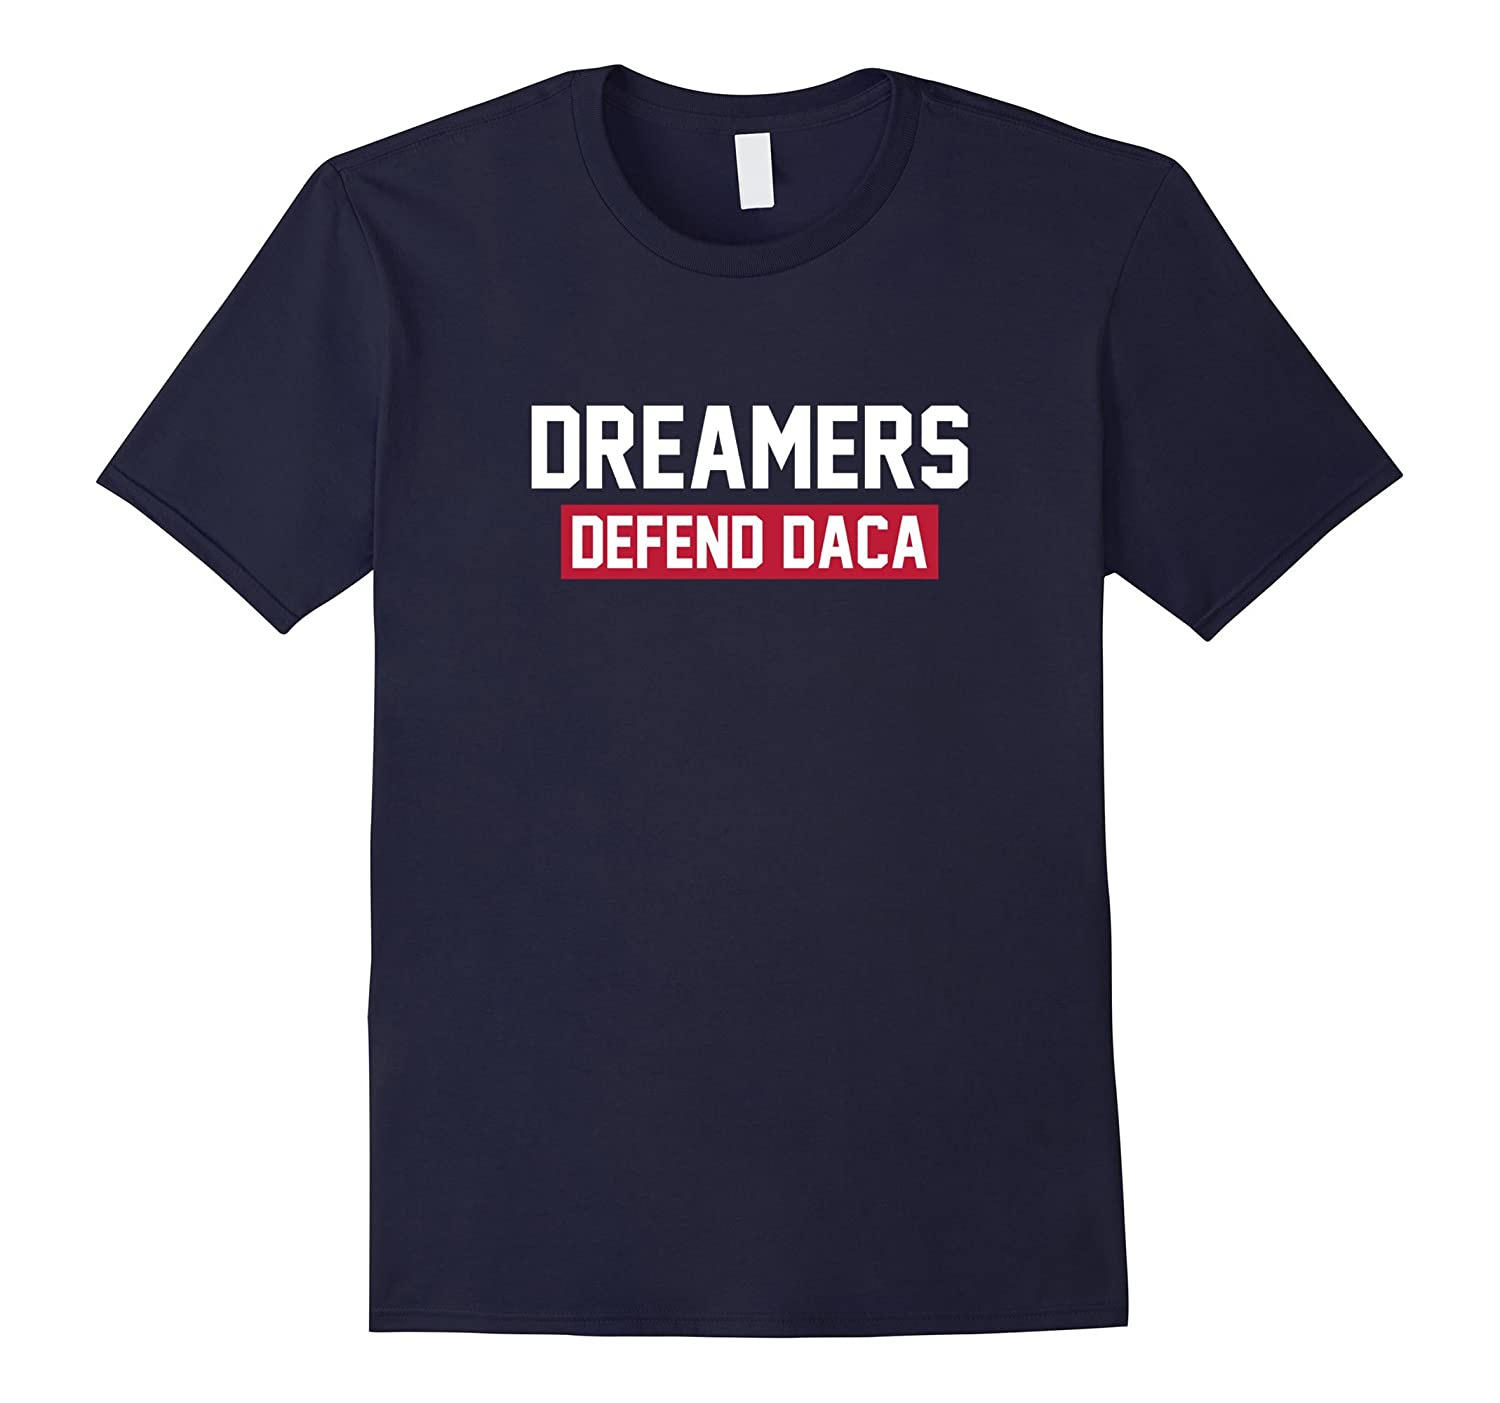 #DefendDACA I Stand With Dreamers Shirt SaveDACA Anti Trump-Art